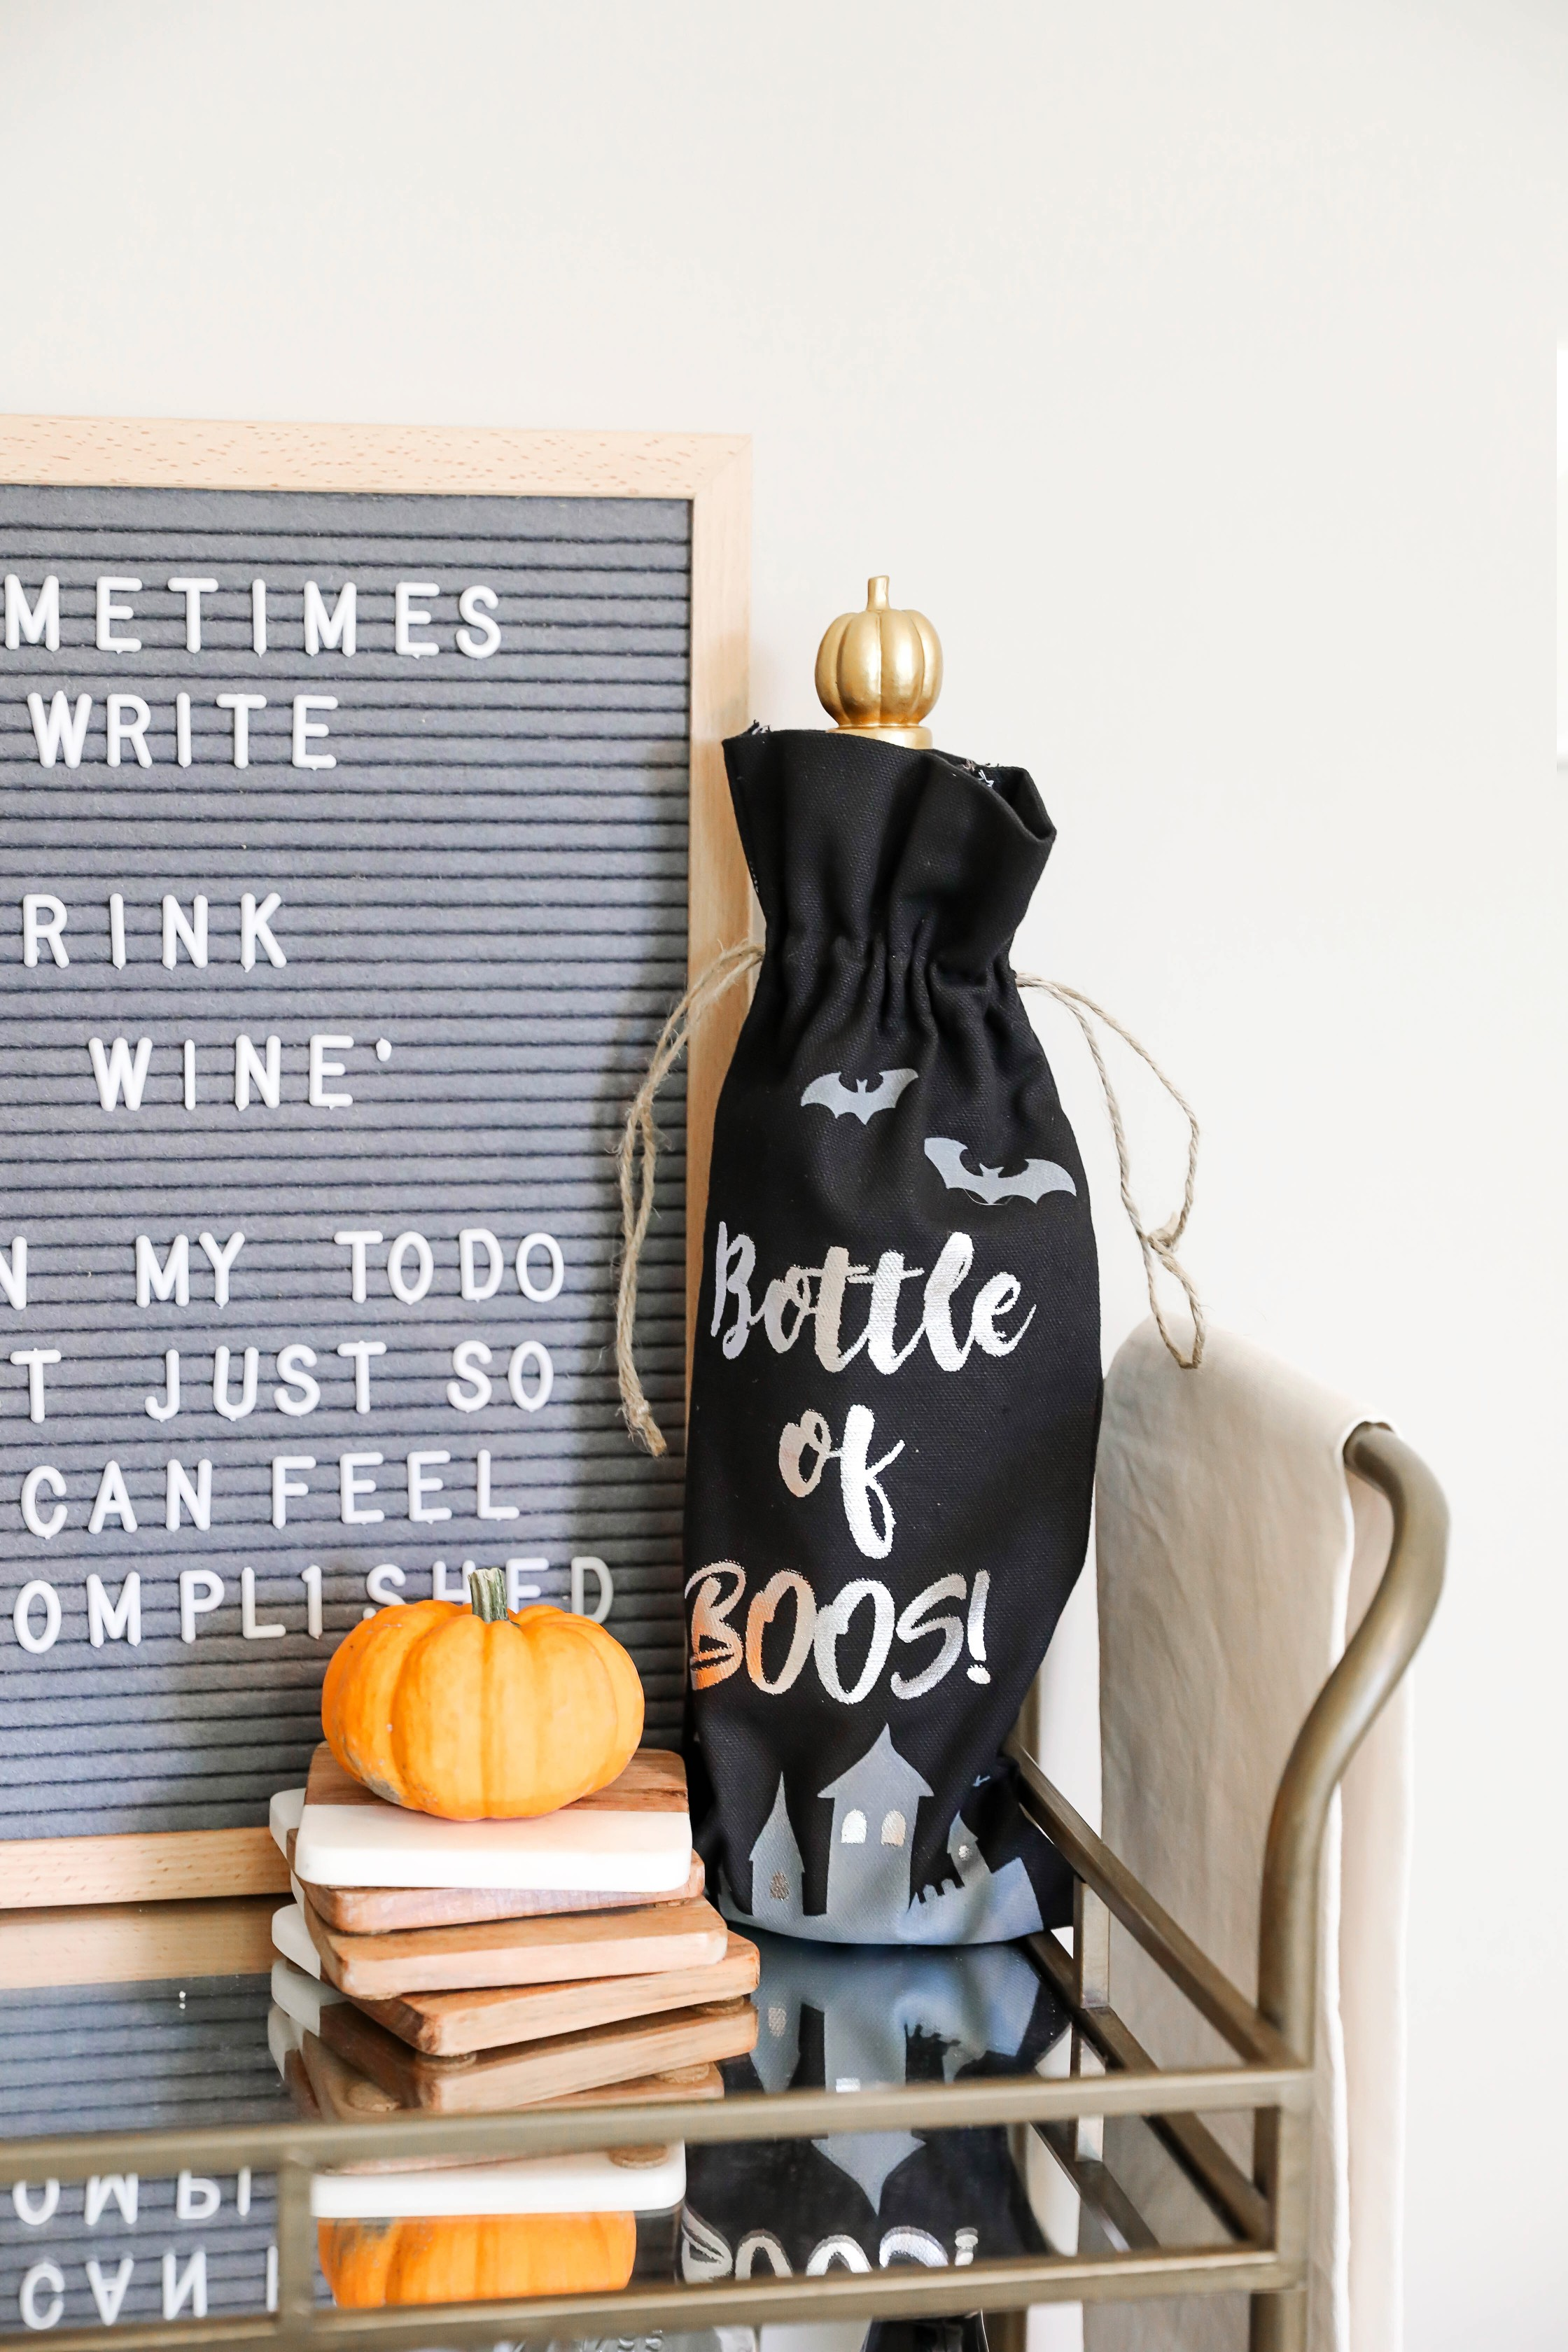 Fall bar cart ideas and fall room decor ideas! Inspiration for white and bright room! Check out this fashion blogger's room tour! I love decorating my house for autumn! Details on fashion and lifestyle blog daily dose of charm by lauren lindmark